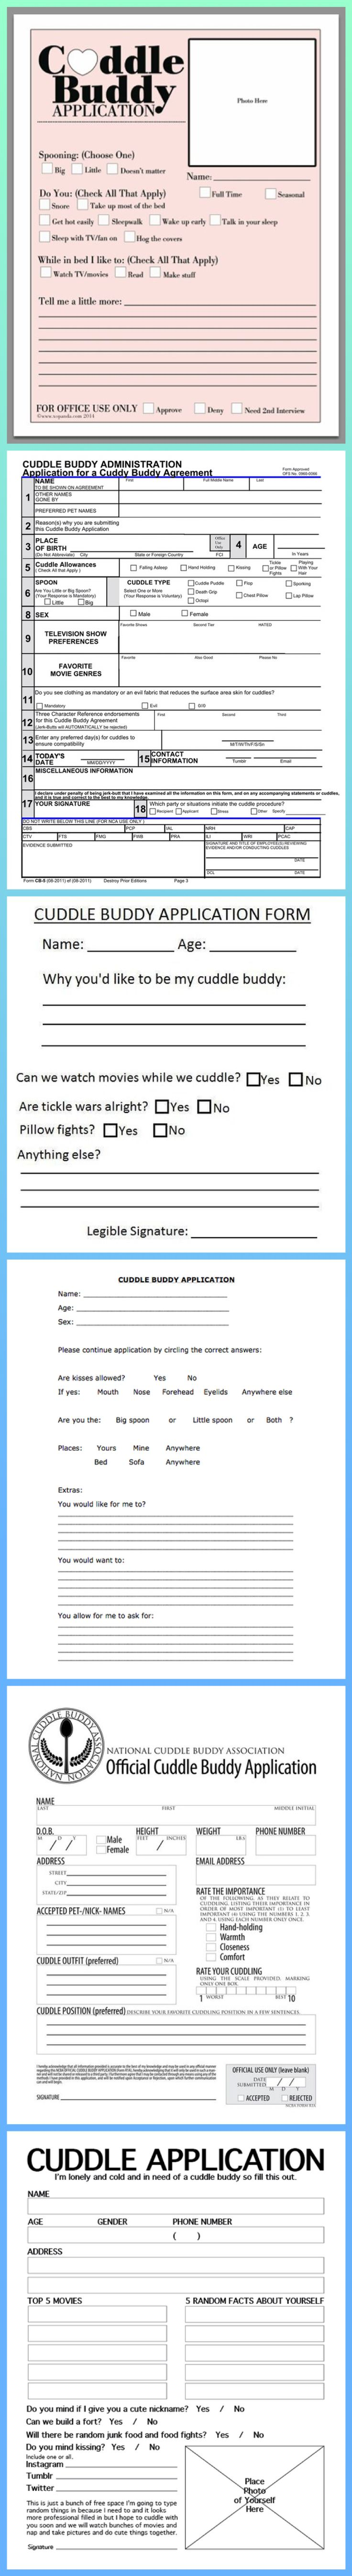 Cuddle Buddy Application Meme